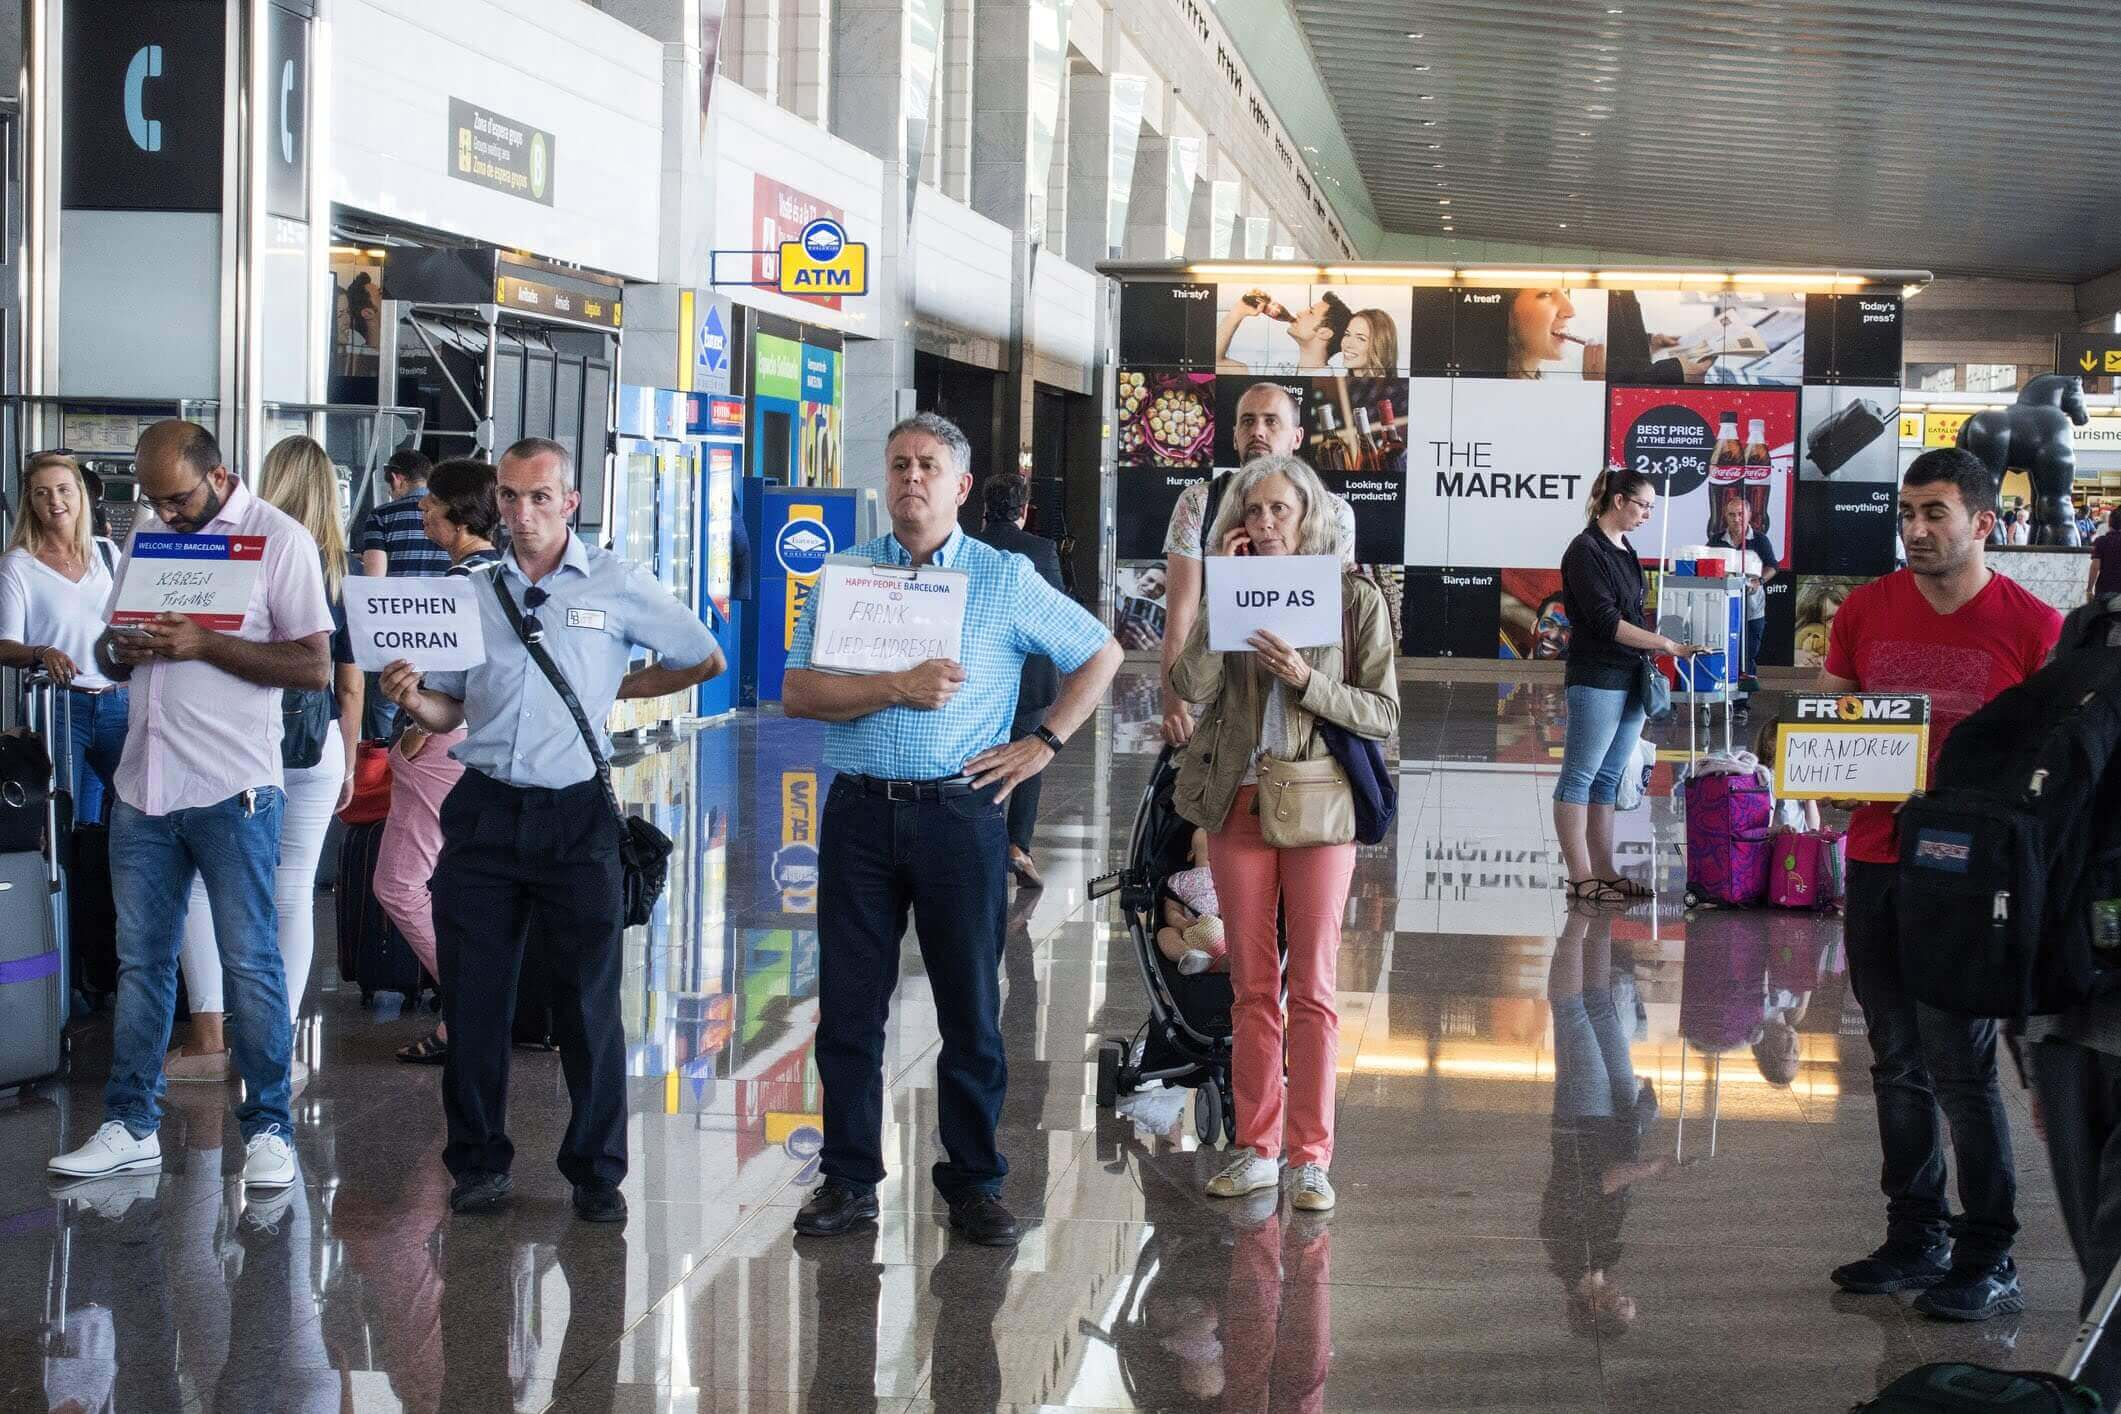 People waiting for arriving passengers at airport holding signs